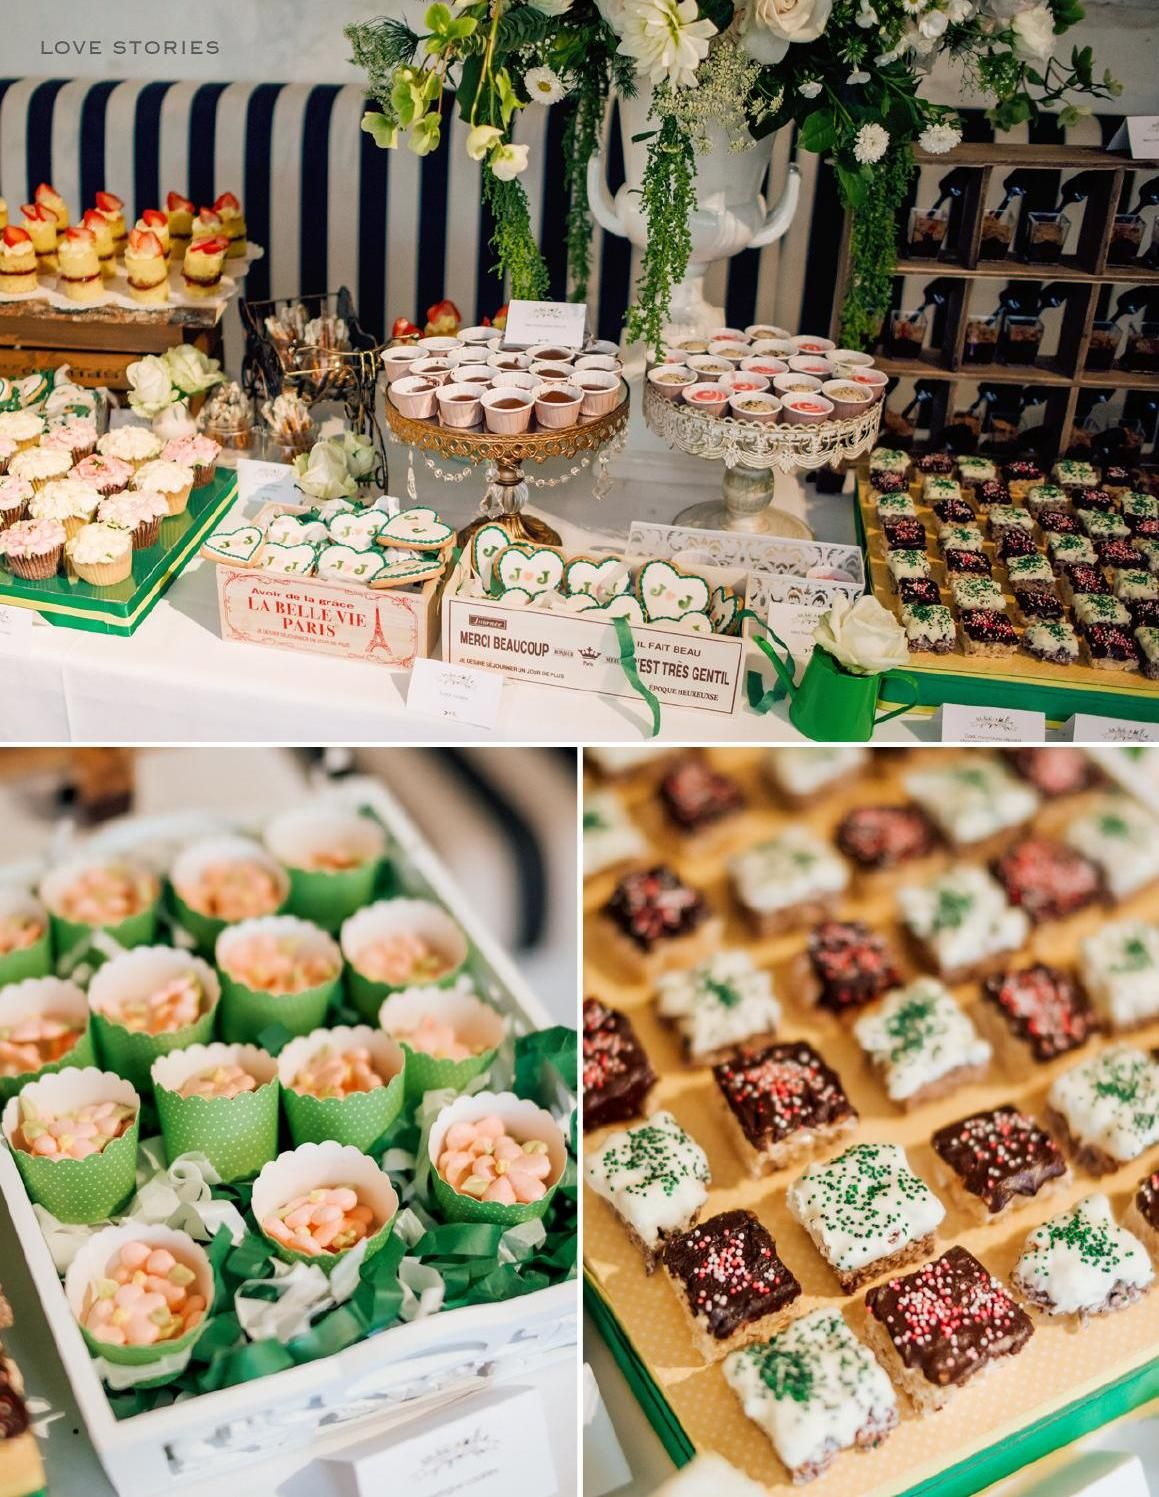 Sweet treats at a rustic wedding | The Wedding Notebook July 2015